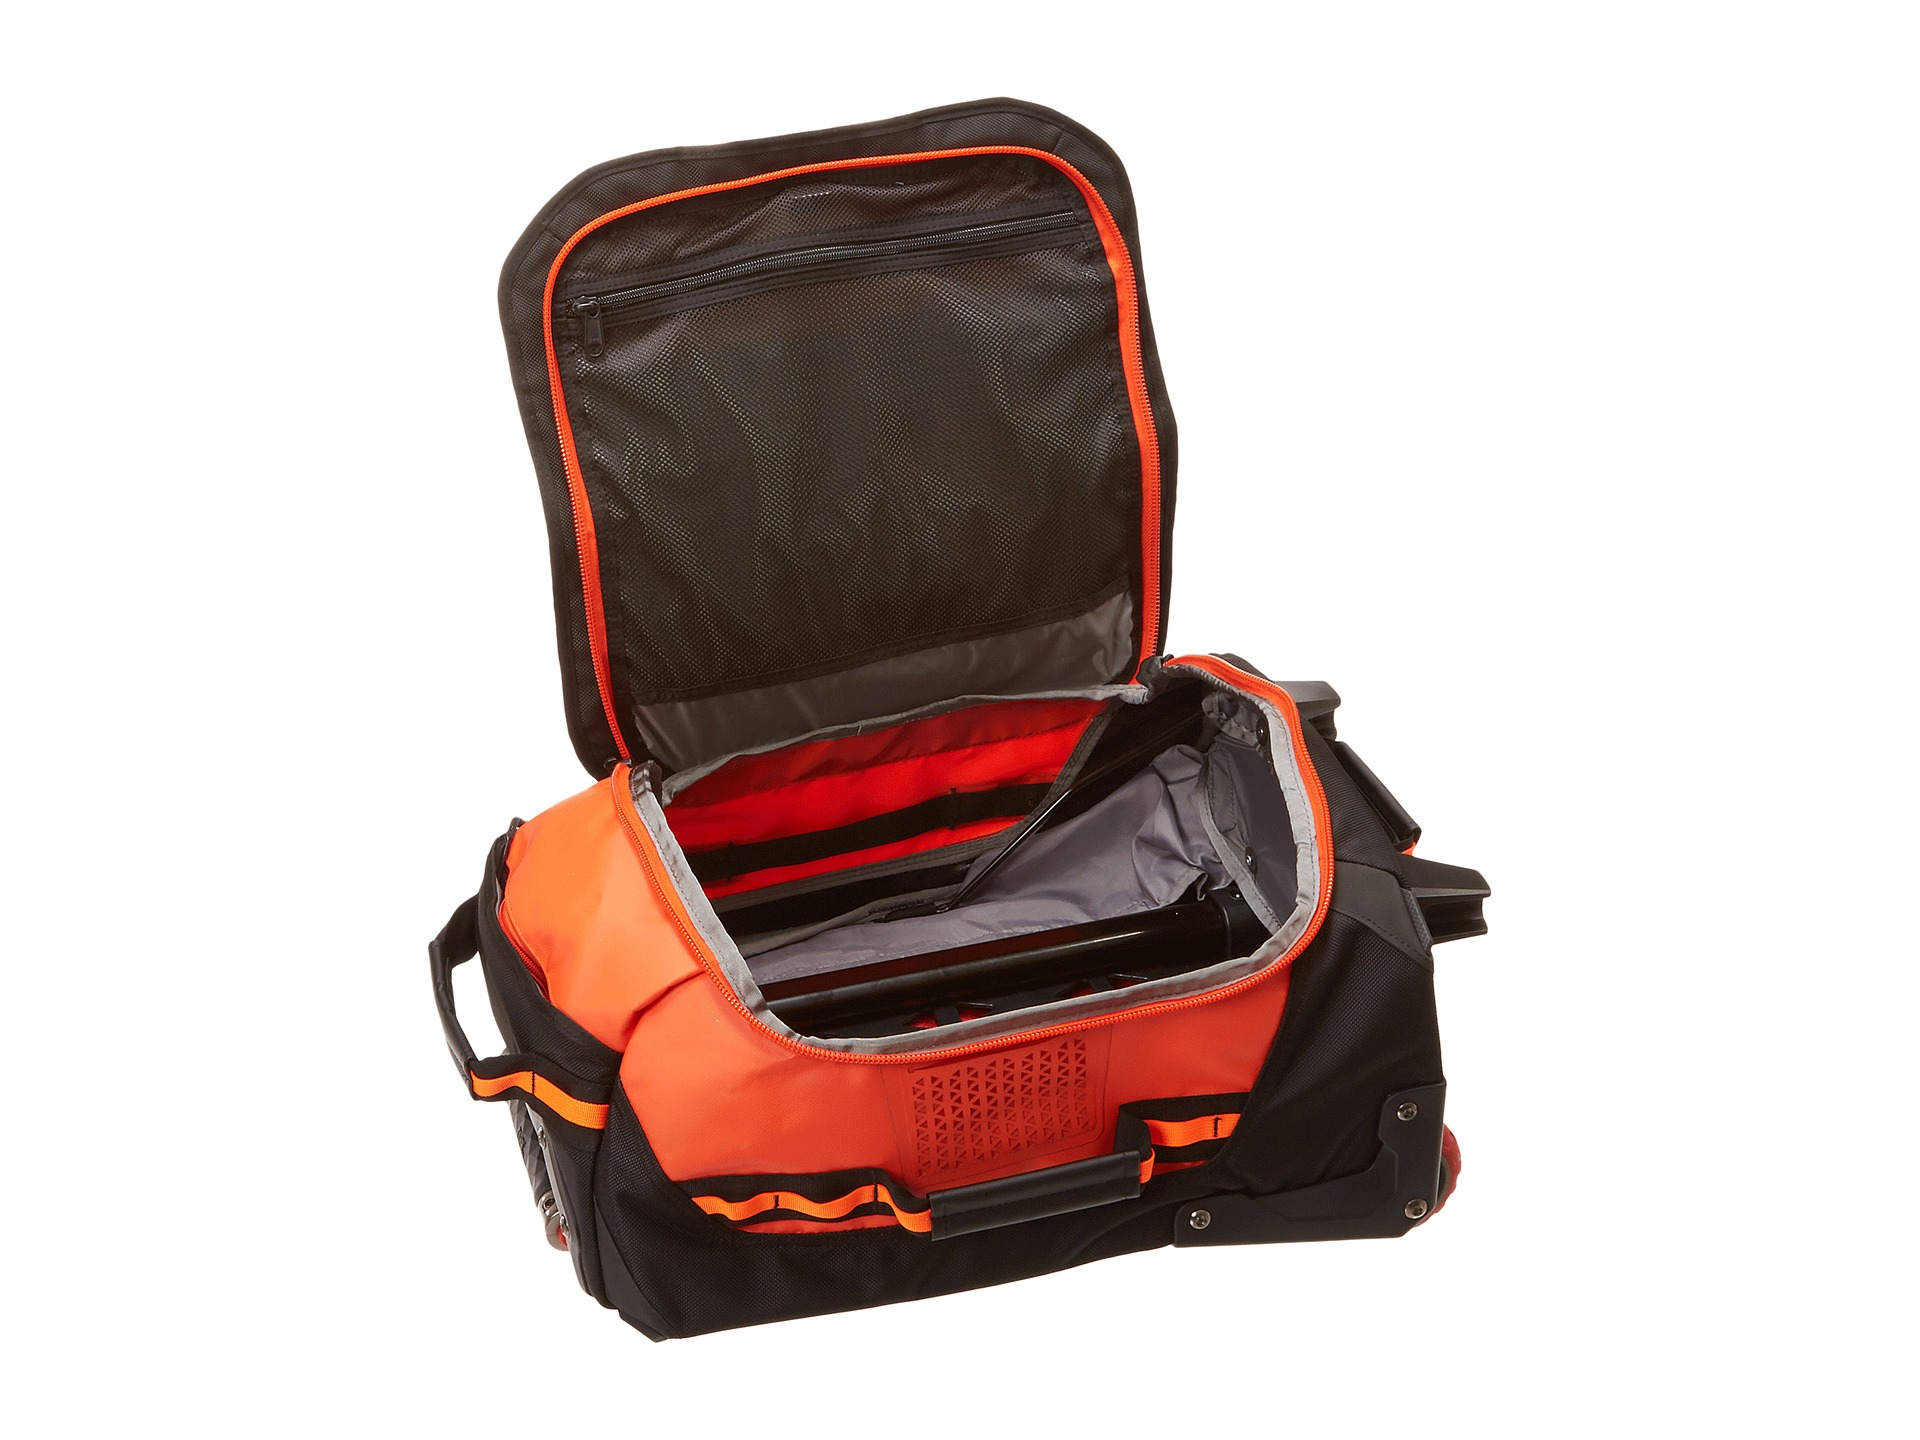 d9390bad5d5 The North Face Rolling Thunder Wheeled Duffel Bag   The Shred Centre